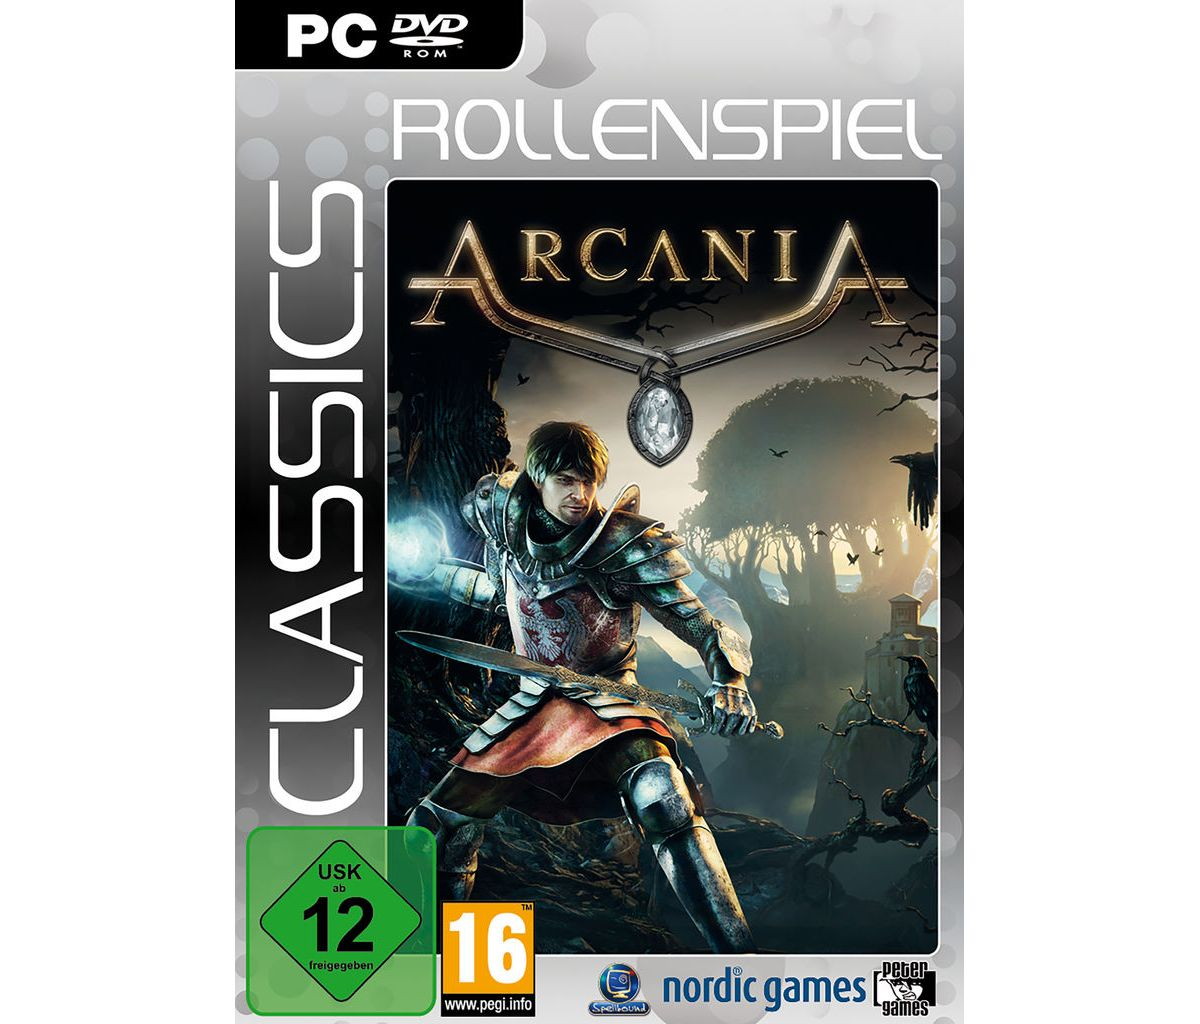 Morphicon PC - Spiel »ArcaniA - Gothic 4 (Rolle...